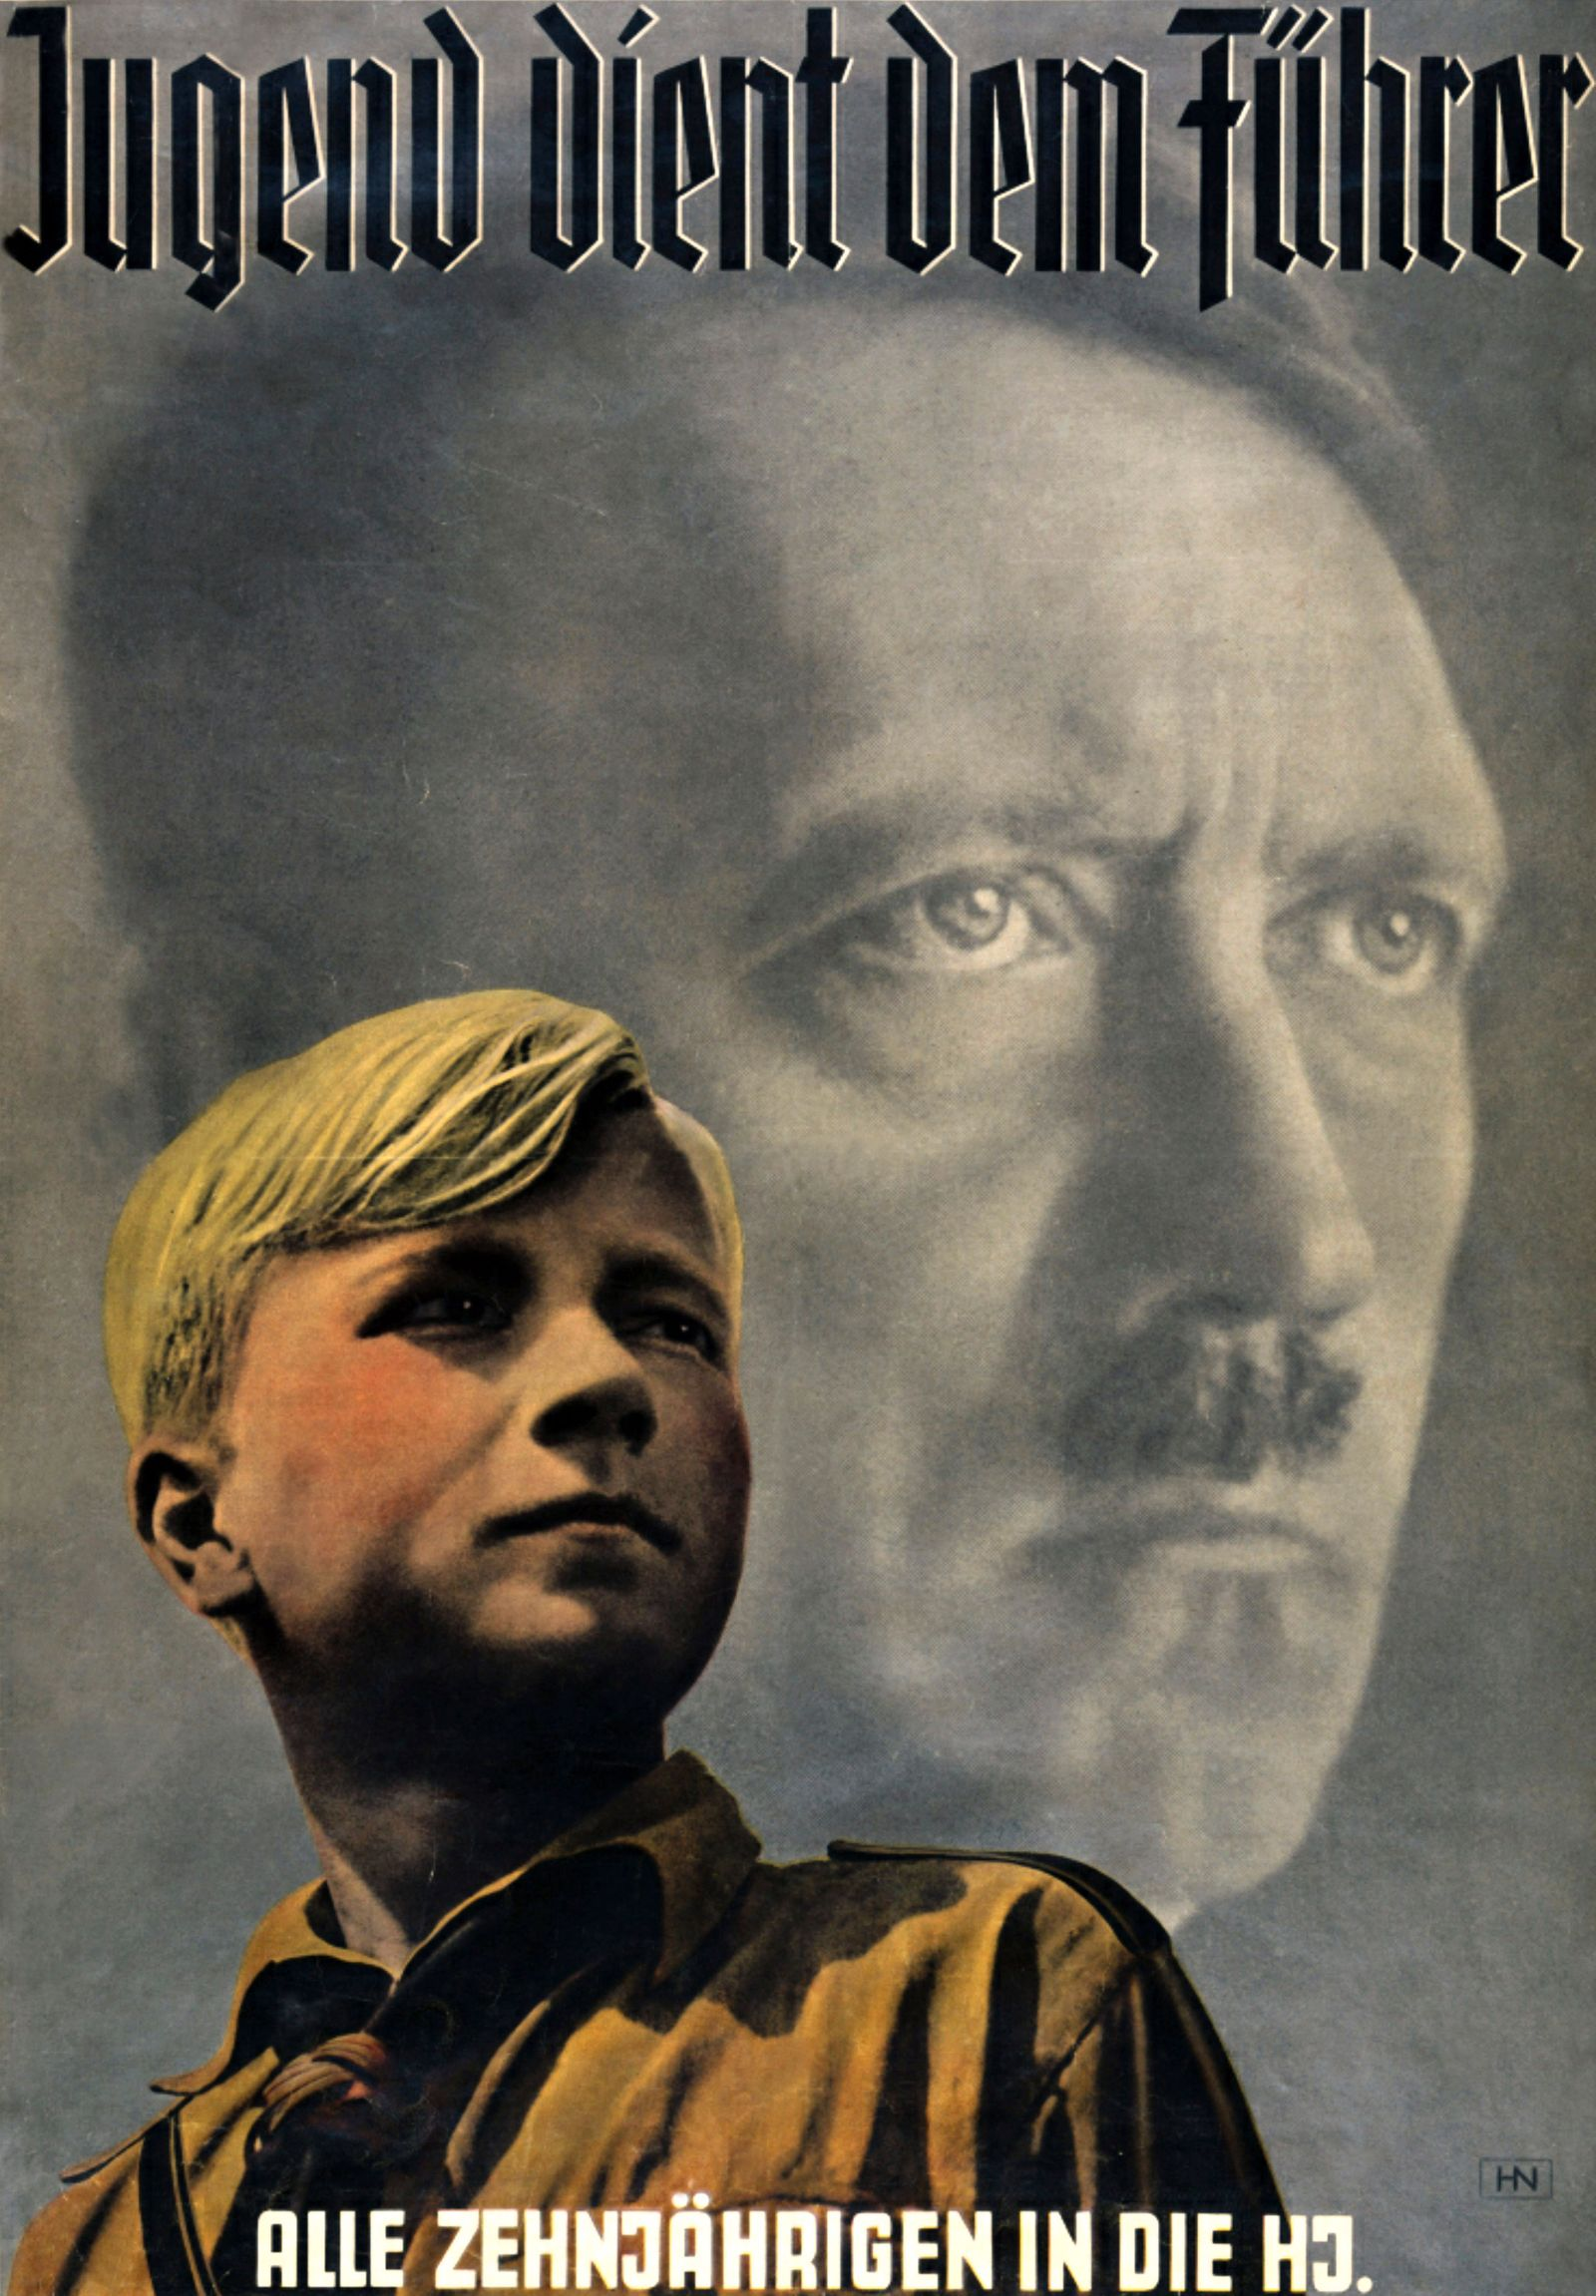 Youth serves the Fuhrer' 'All 10-year olds in the Hitler Youth'. Hitler youth Poster circa 1936.